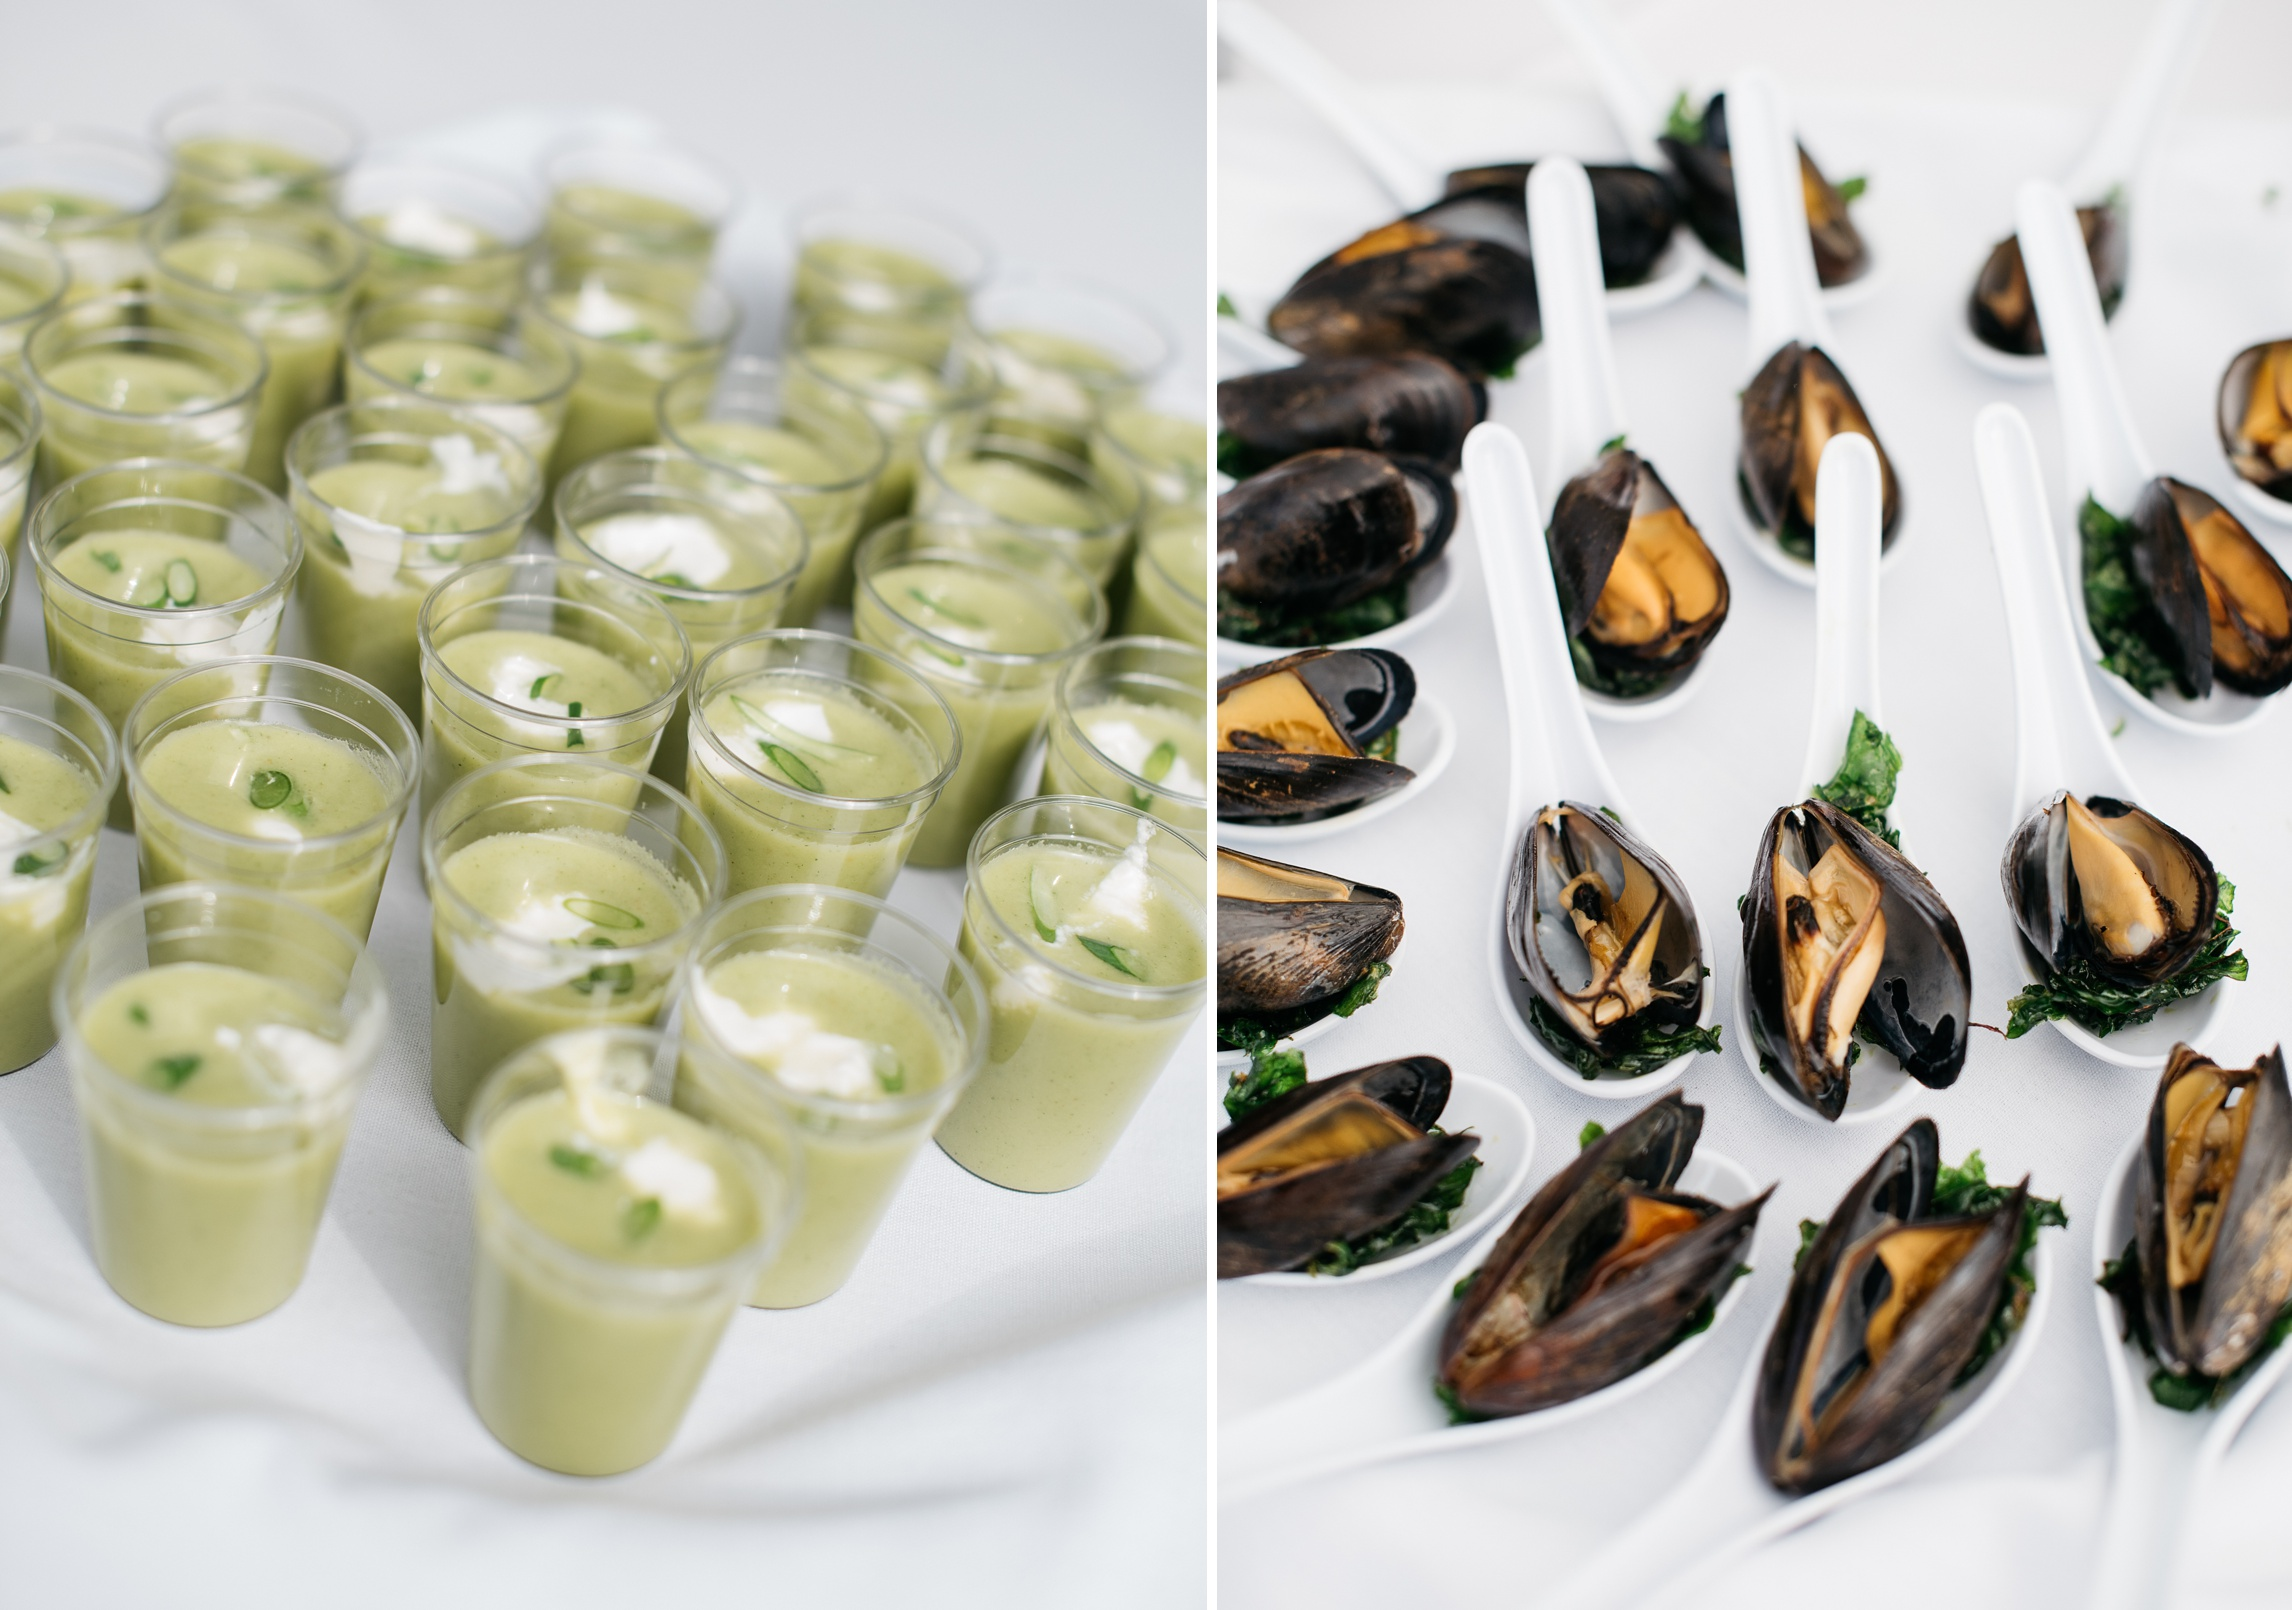 Chilled soup shooters and smoked mussels at the Fortified Collaborations Heart of Summer Dinner at Happy Heart Farm in Fort Collins, Colorado. Food by Fish Restaurant and Market.Event photography by Sonja Salzburg of Sonja K Photography.